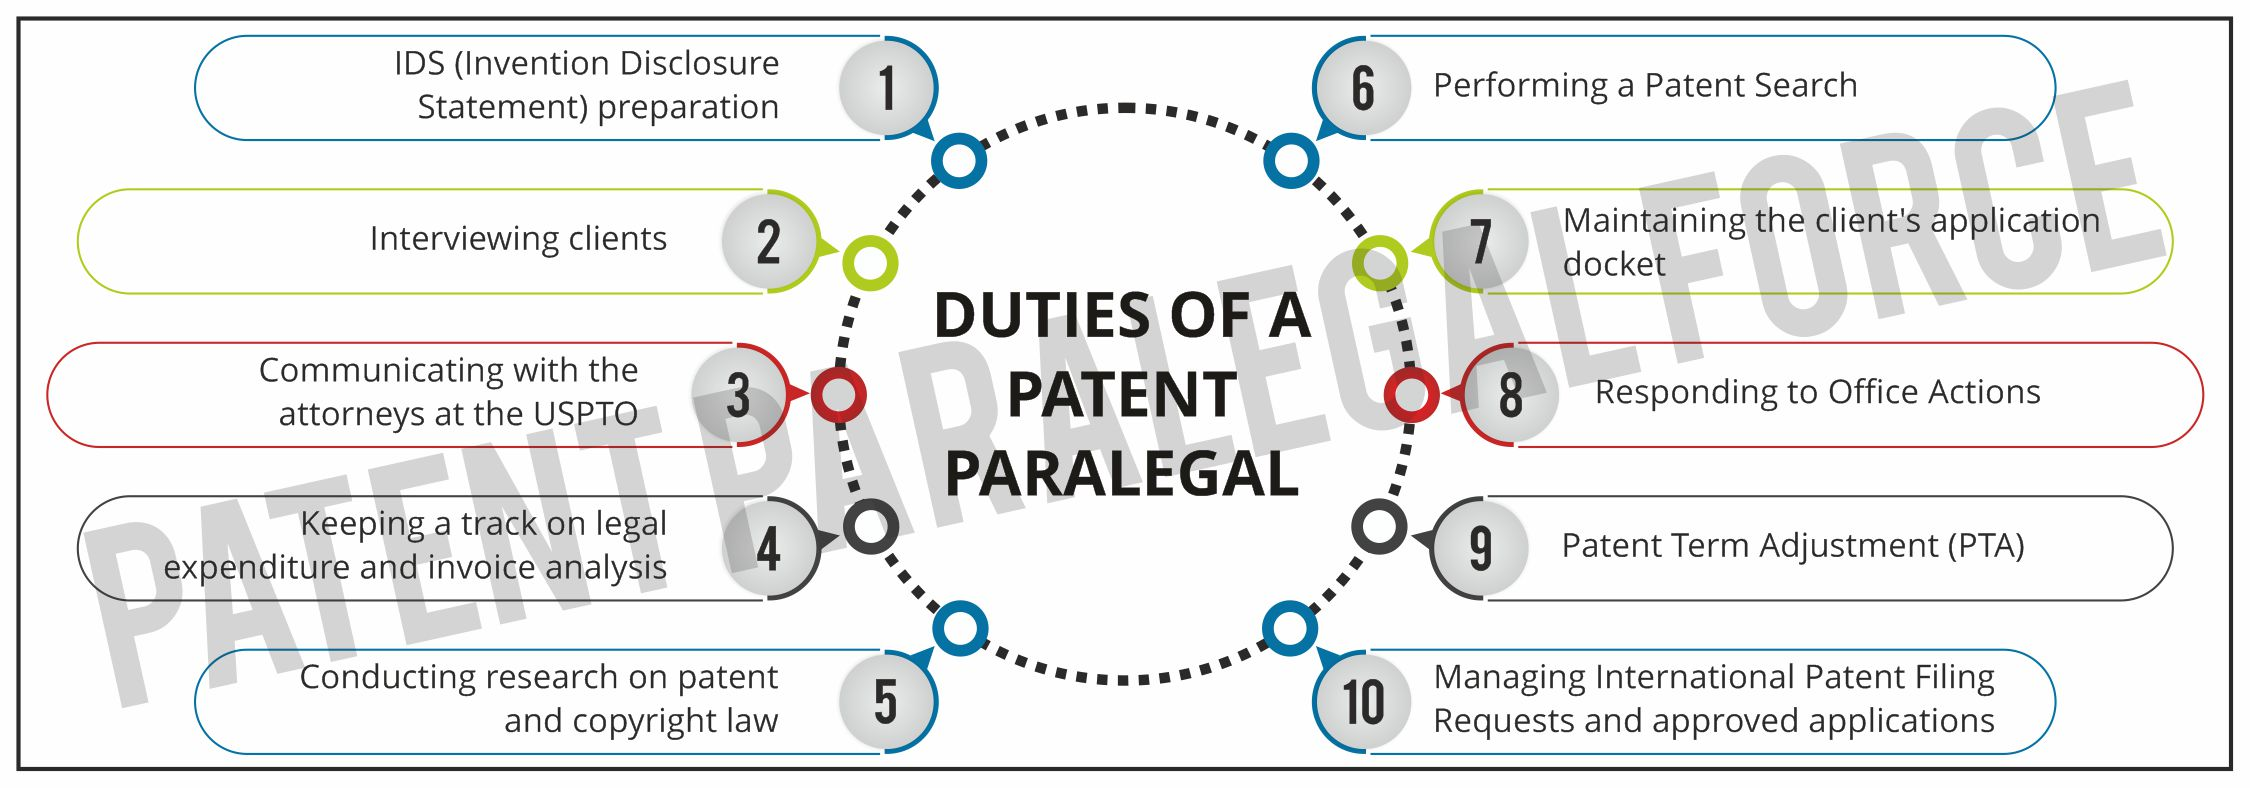 What does a Patent Paralegal do?